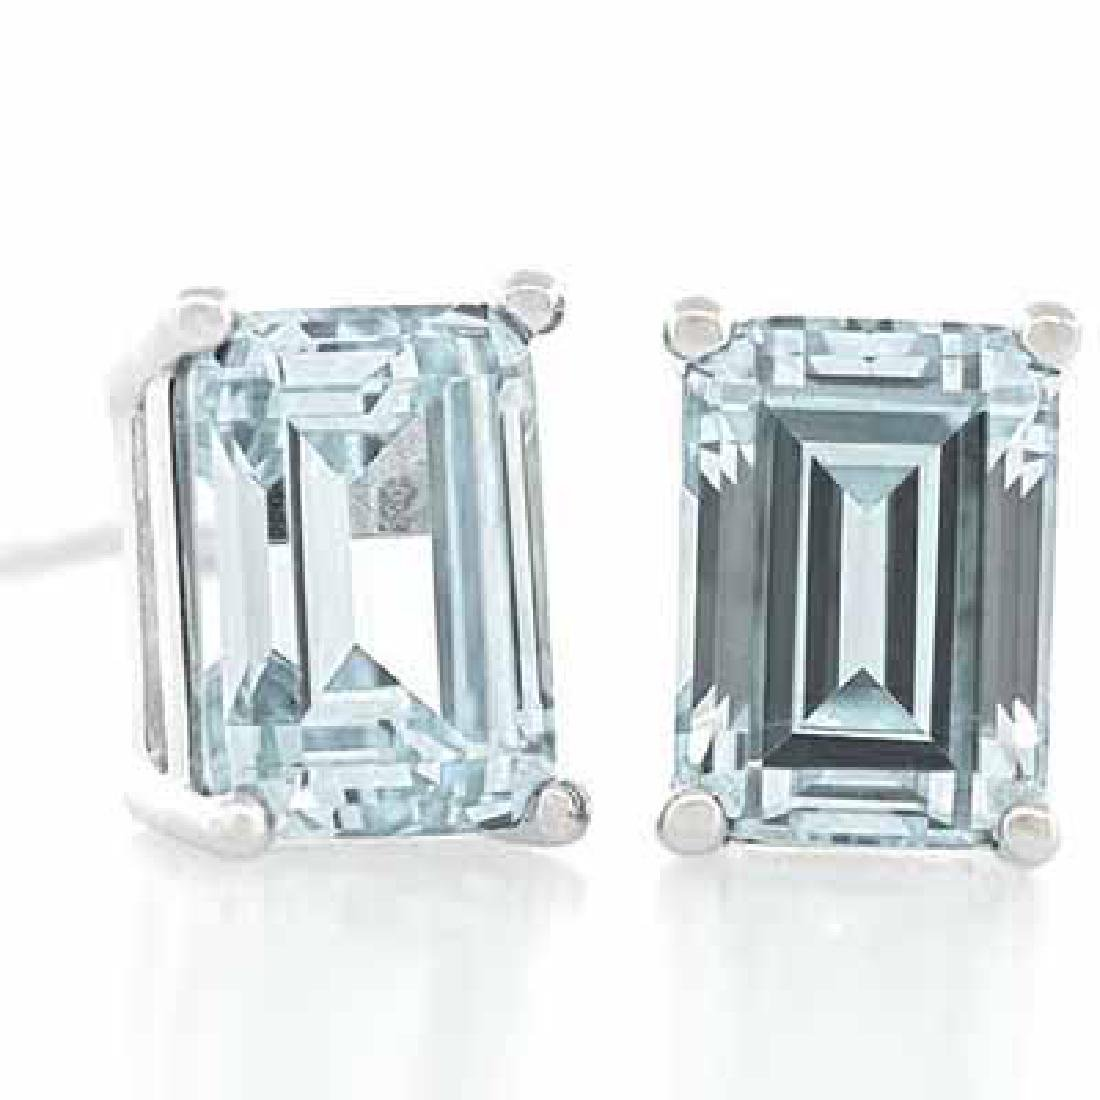 1 1/4 CARAT AQUAMARINE 925 STERLING SILVER EARRINGS